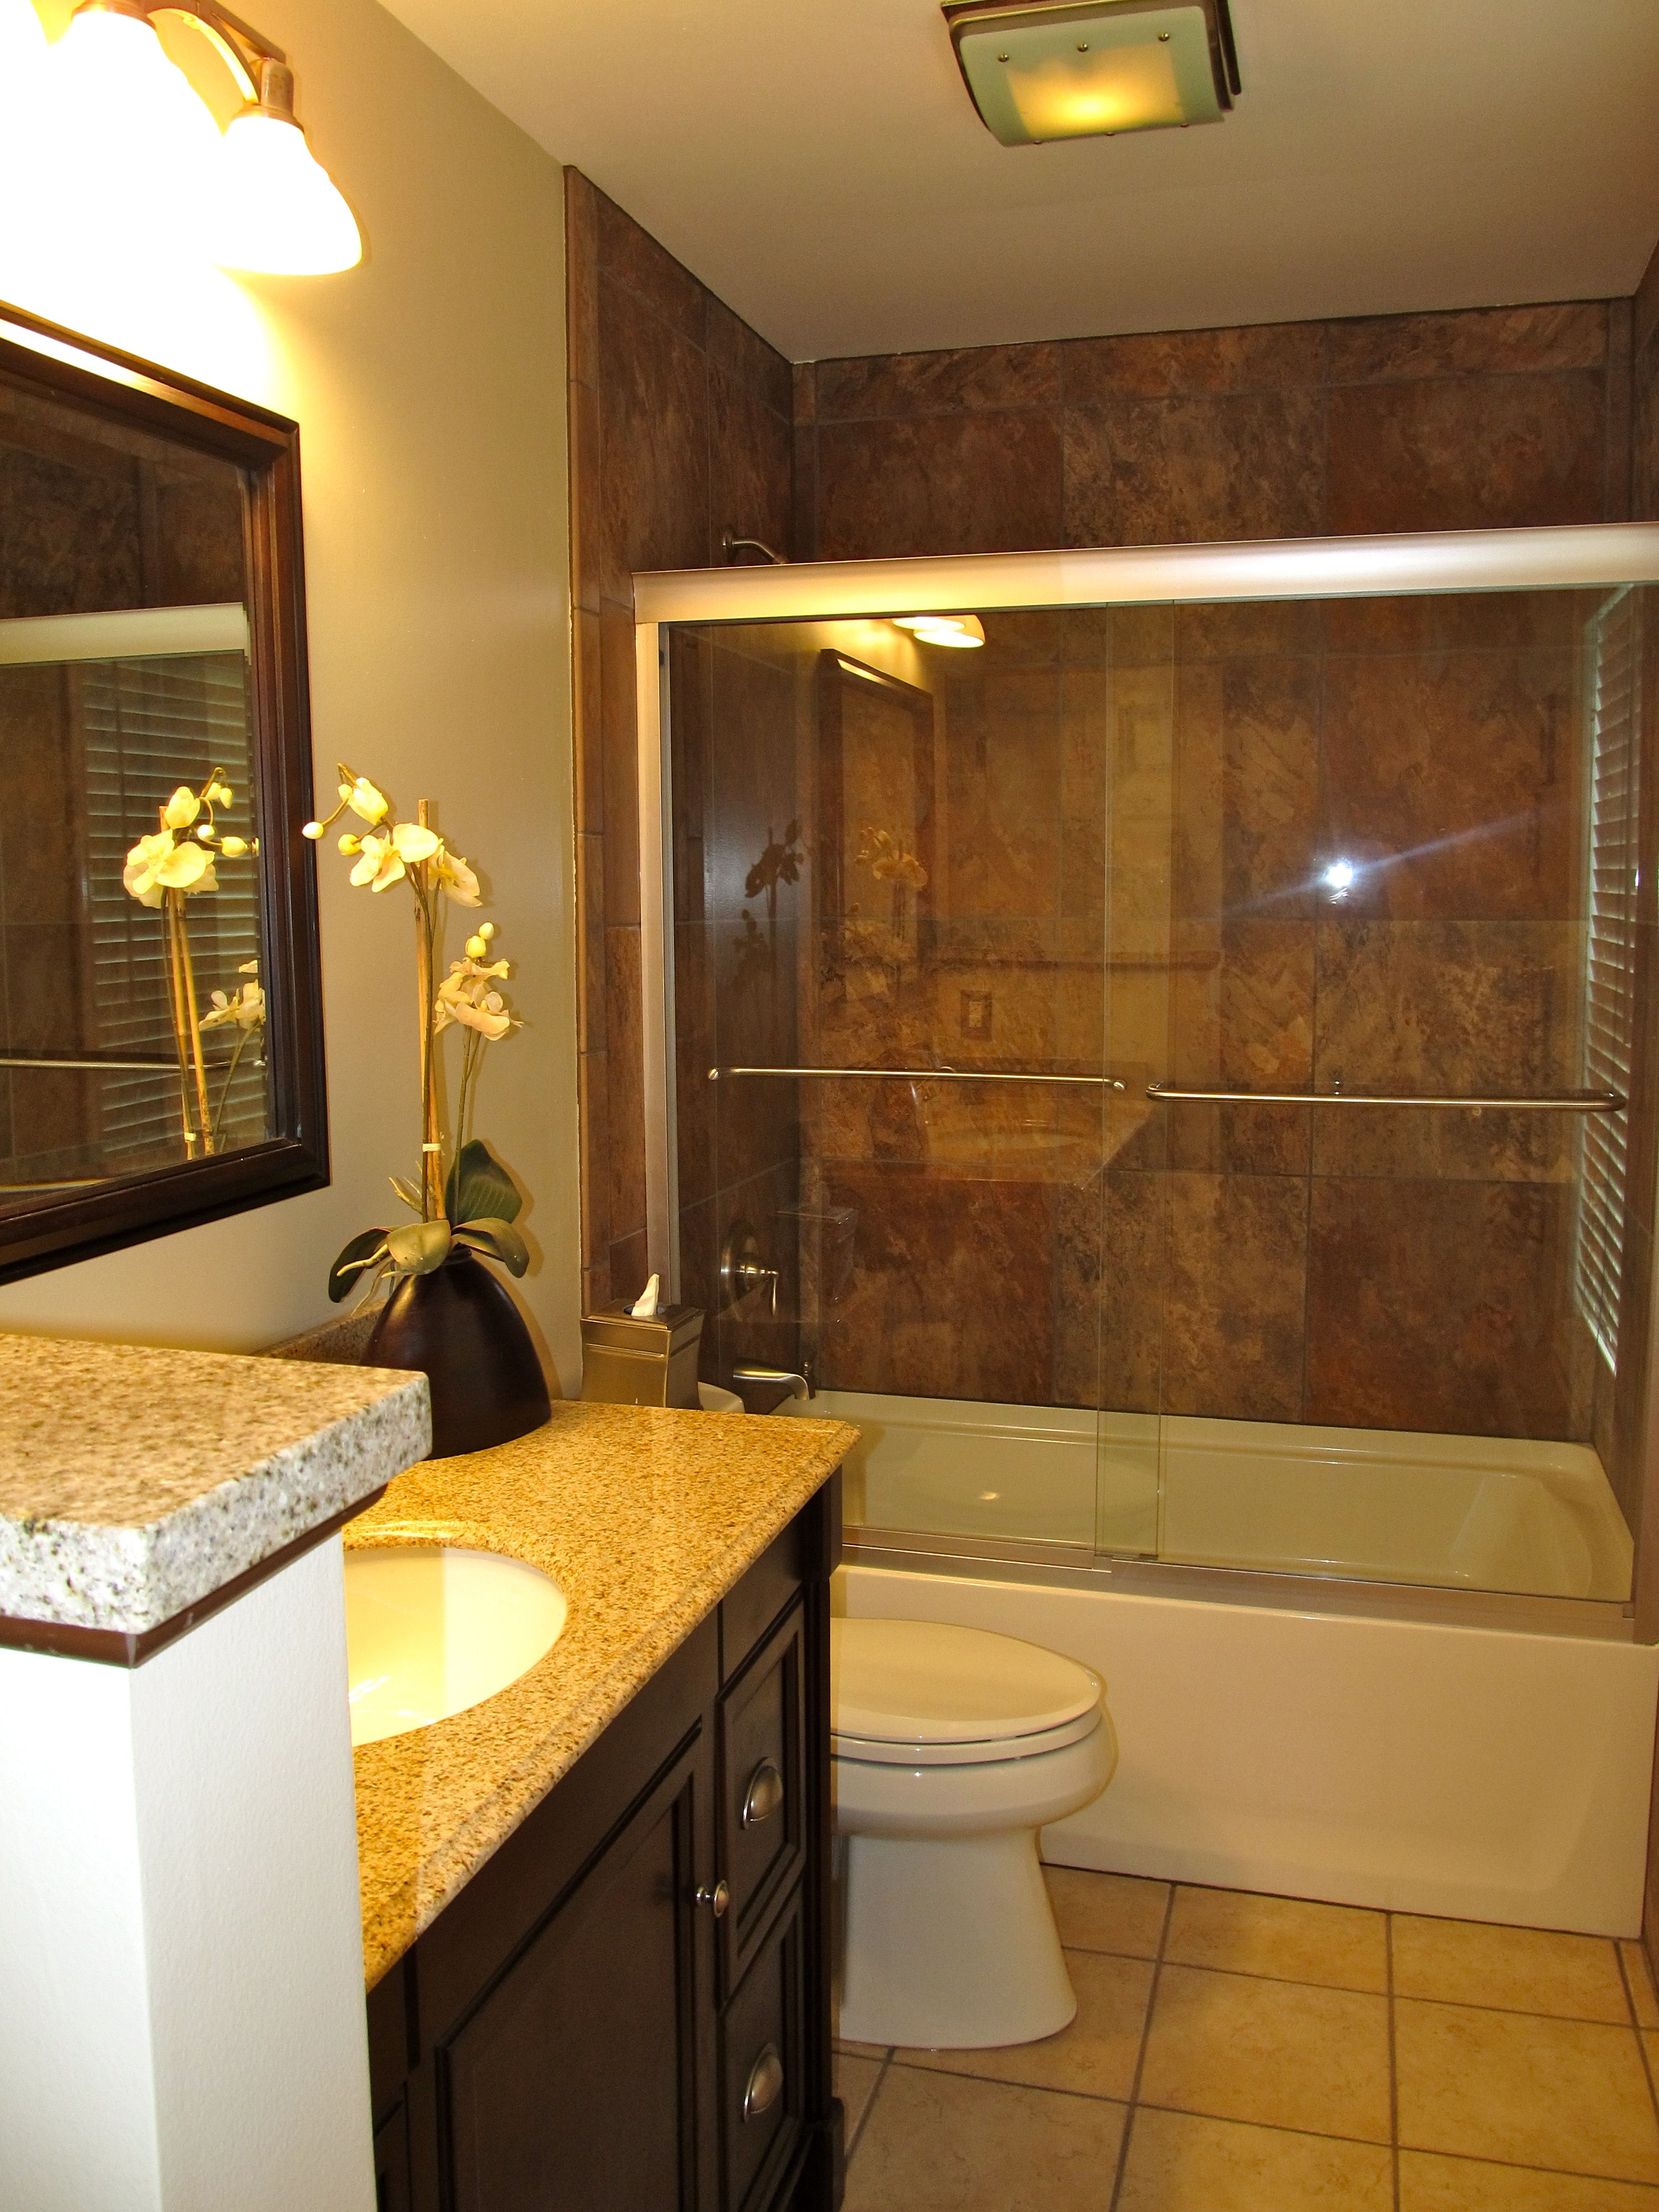 Remodeled guest bath remodeling my home ideas pinterest - Guest bathroom remodel designs ...